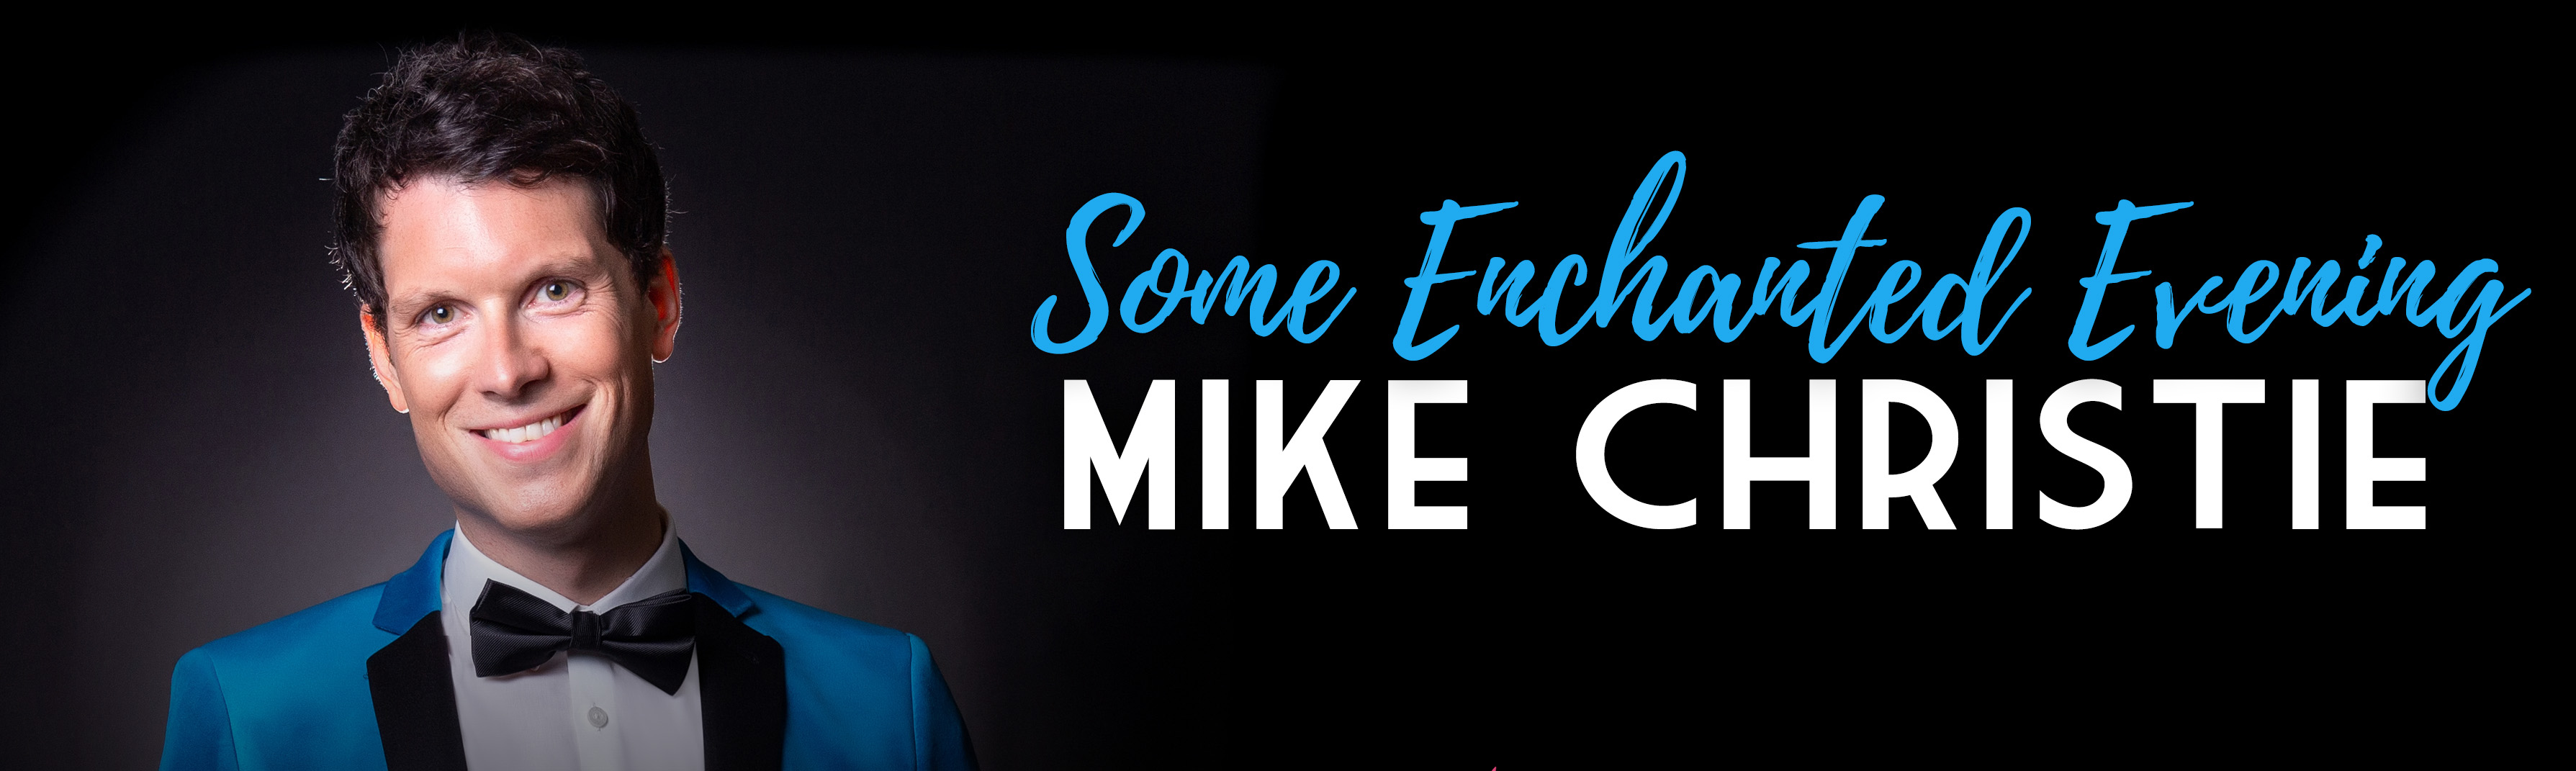 Tickets for An audience with Mike Christie in Wetherby from Ticketbooth Europe